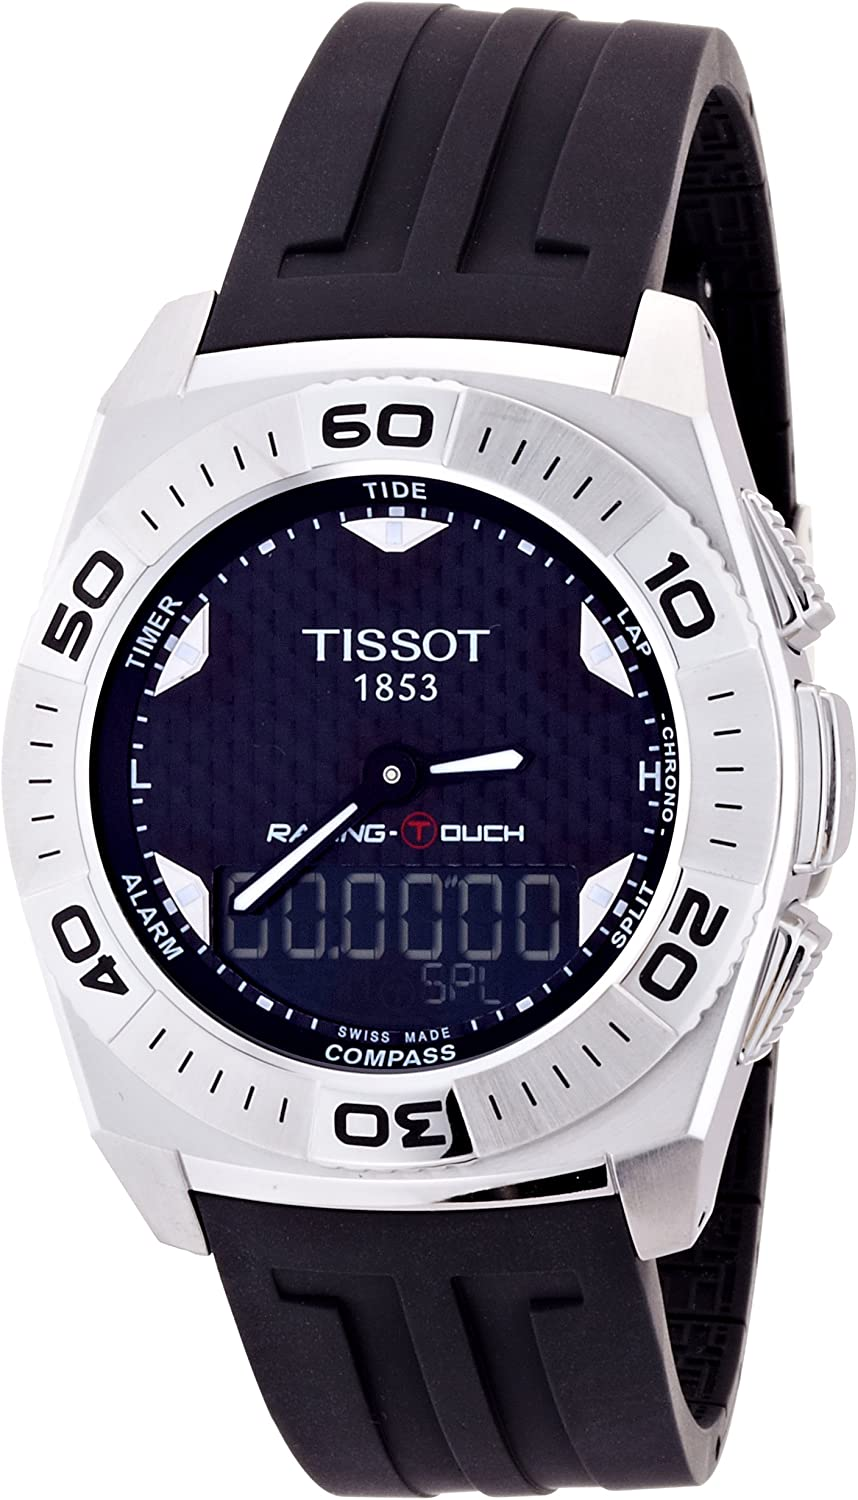 Tissot Men s T002.520.17.201.01 Black Tactile Dial Watch